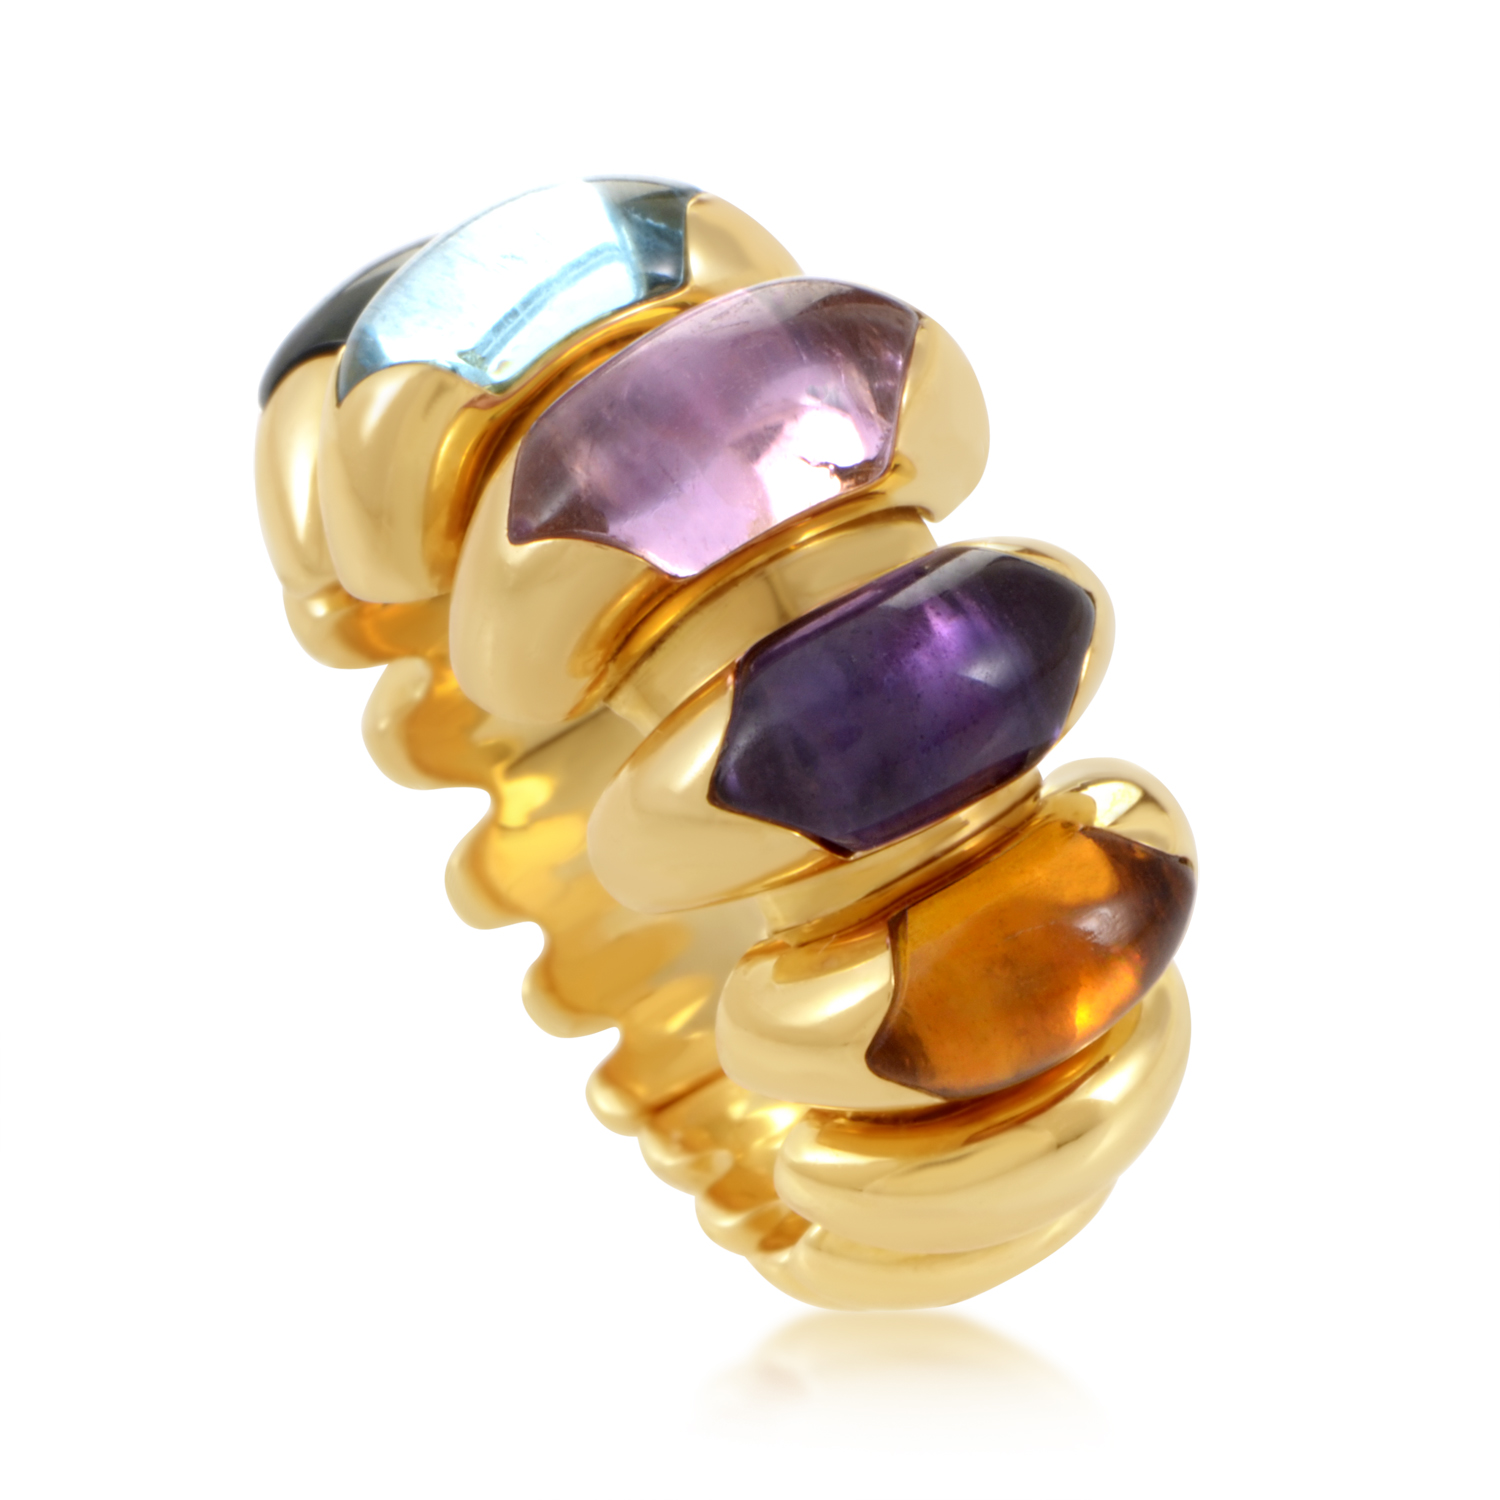 Bvlgari Celtica 18K Yellow Gold Multi-Gem Band Ring